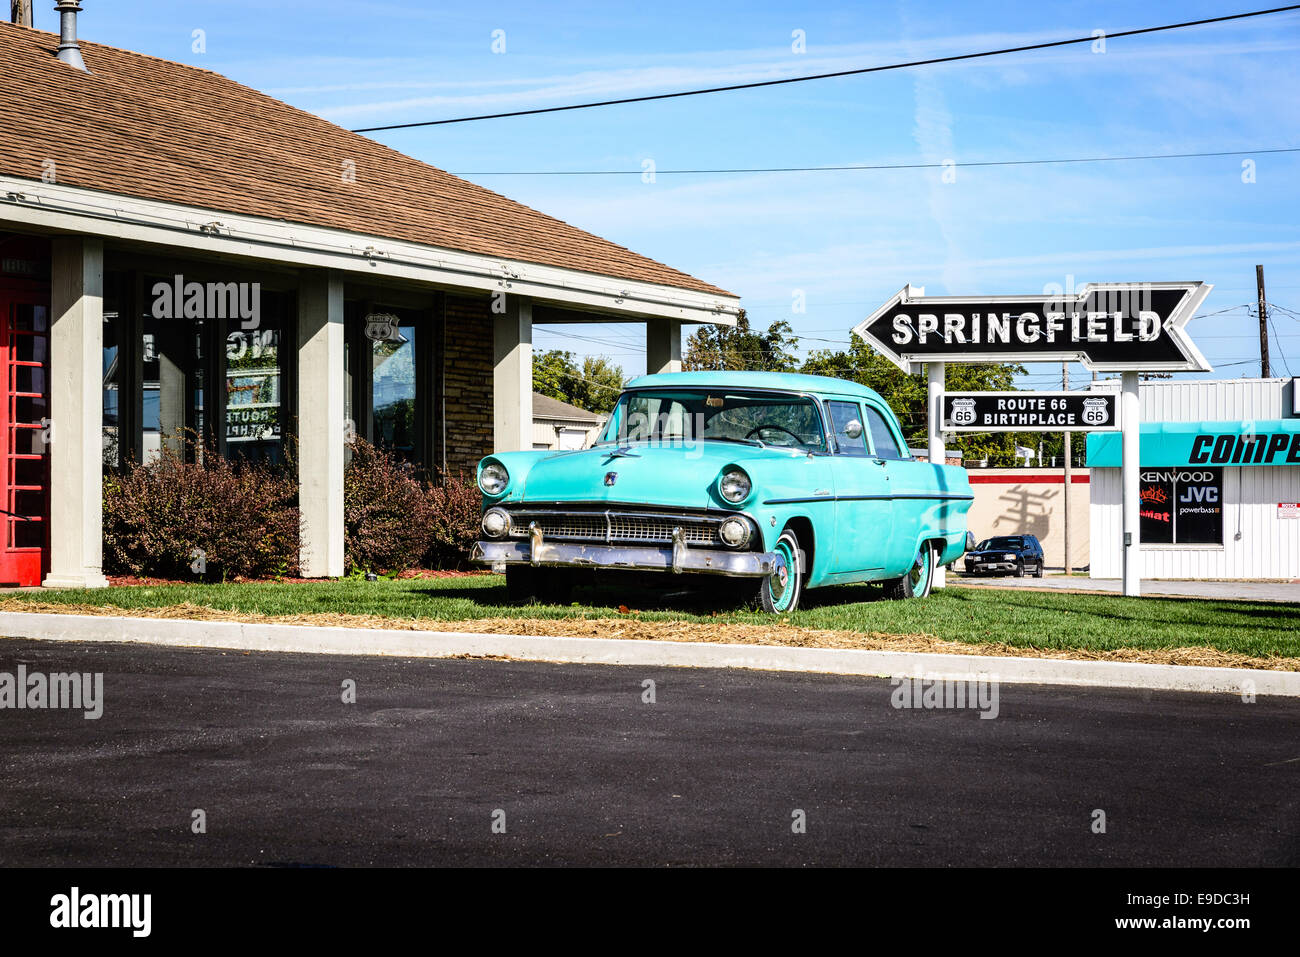 1955 ford custonline outside motel route 66 rail haven for Springfield registry of motor vehicles